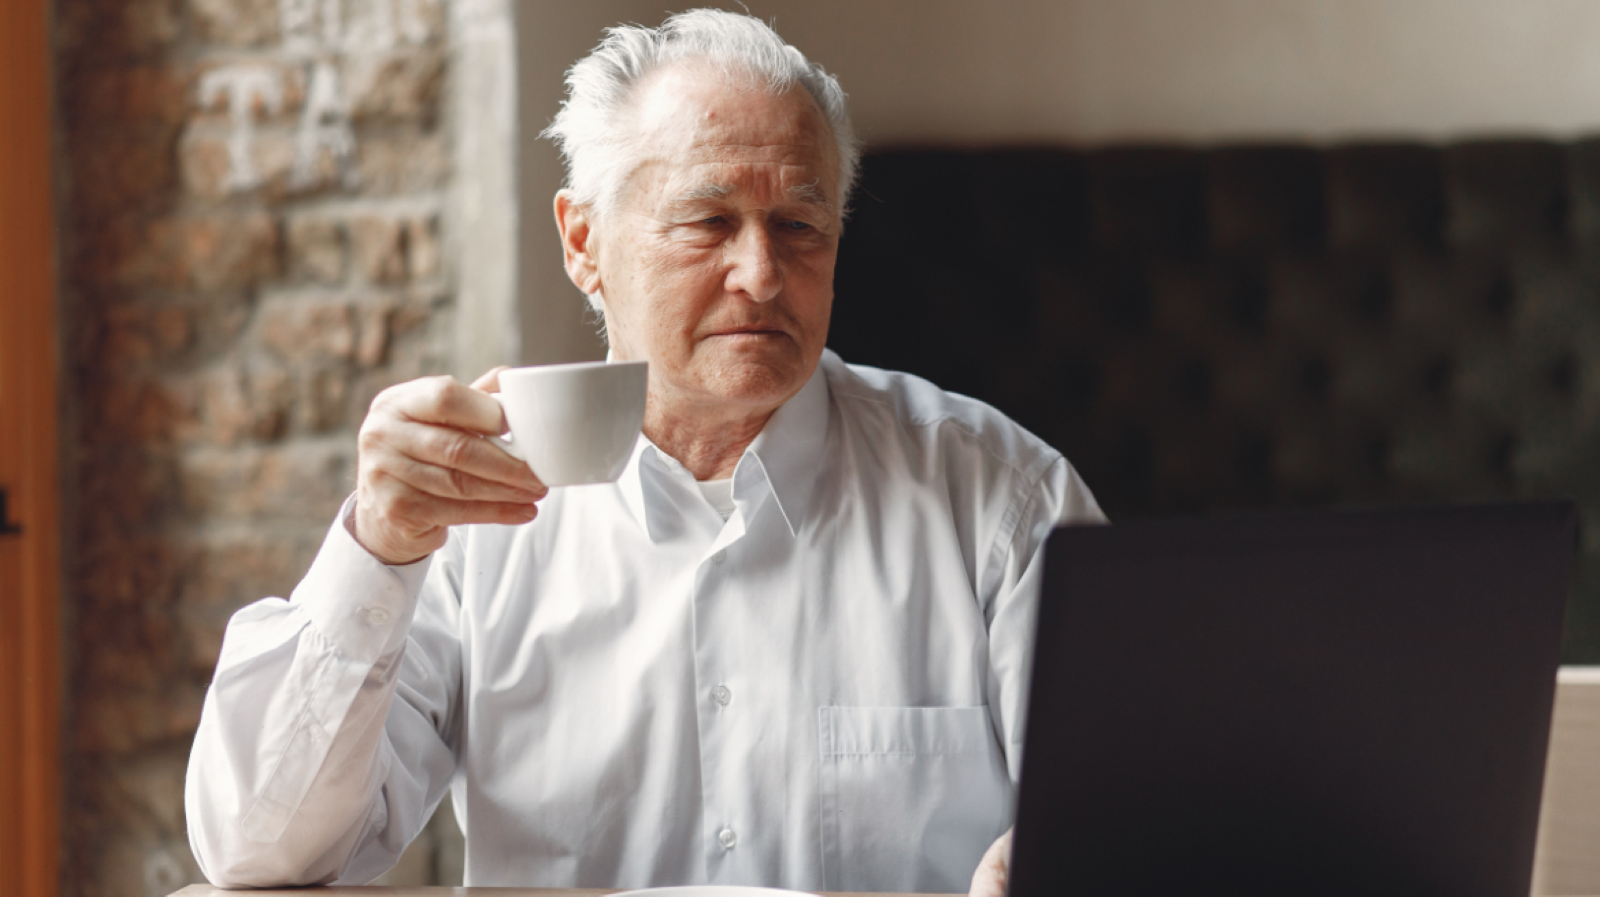 Senior man with a skeptical look on his face looking at his laptop holding a white ceramic mug of coffee